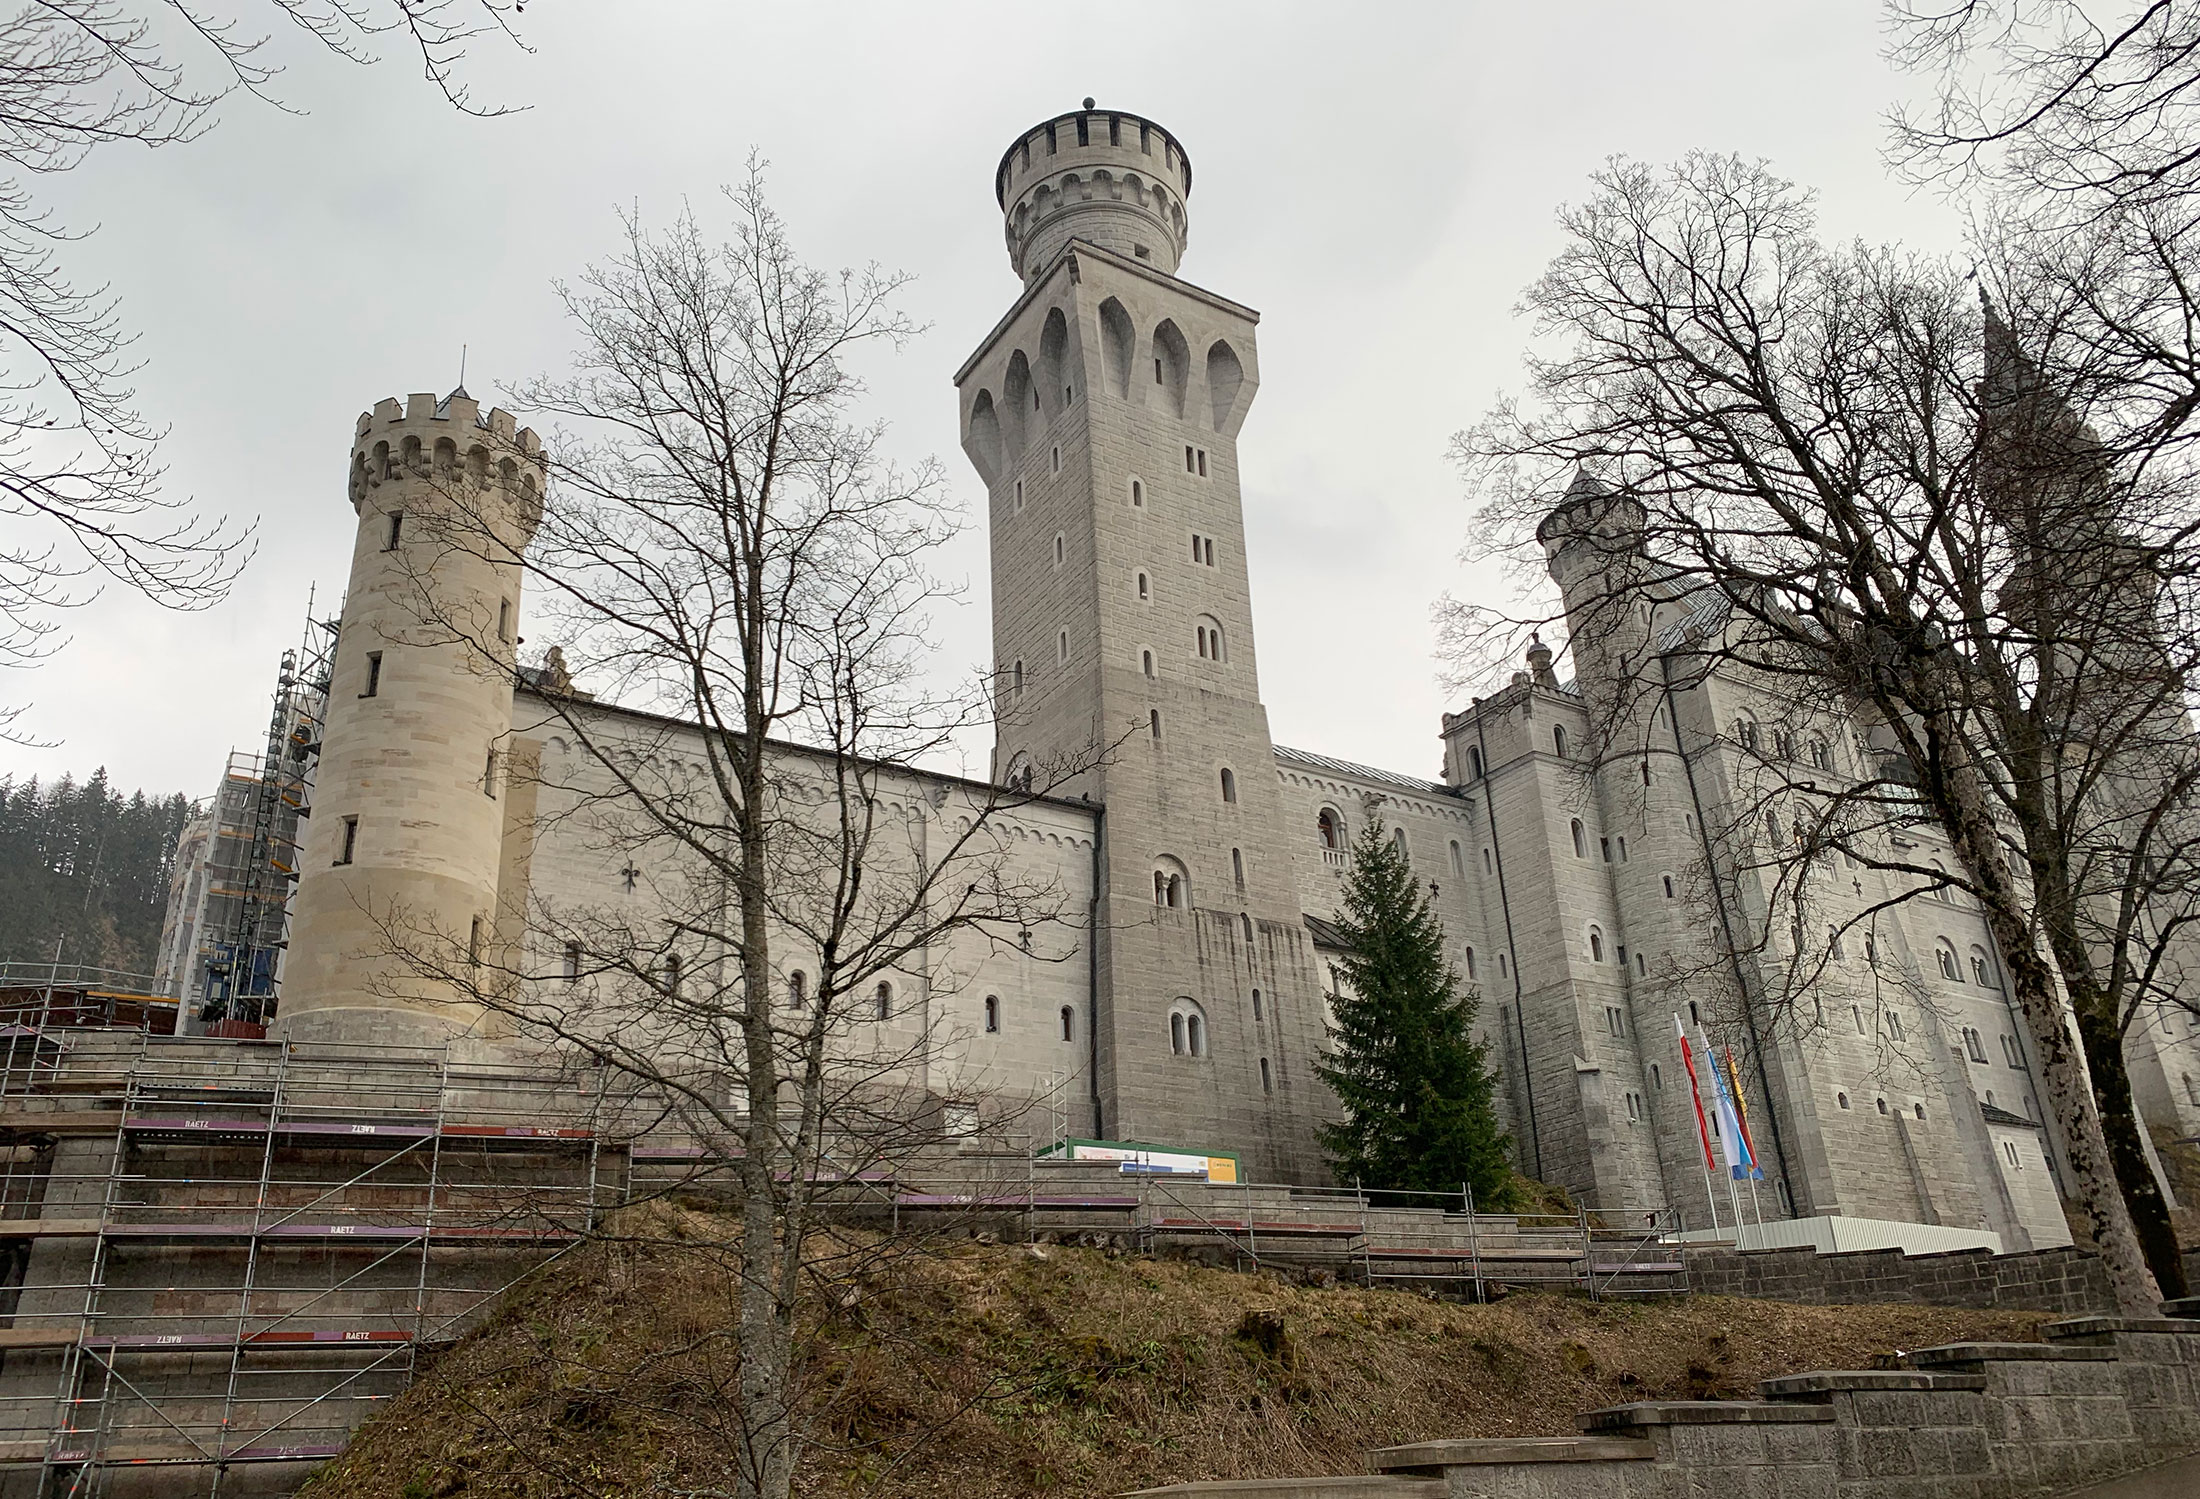 They're constantly restoring portions of the castle and its surroundings.